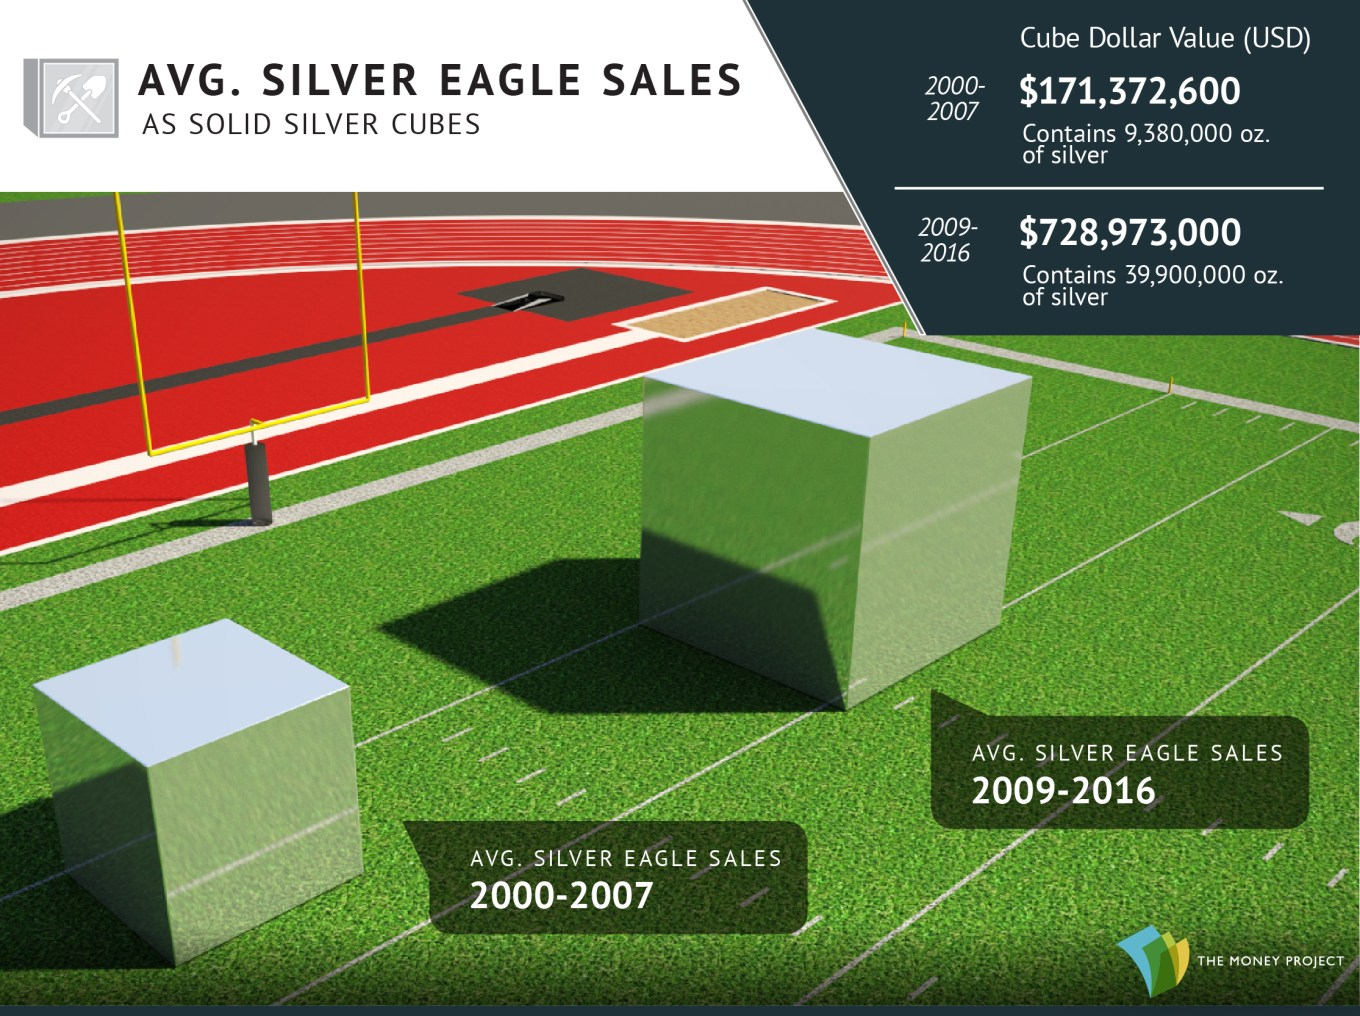 Silver Eagle Sales as a Silver Cube